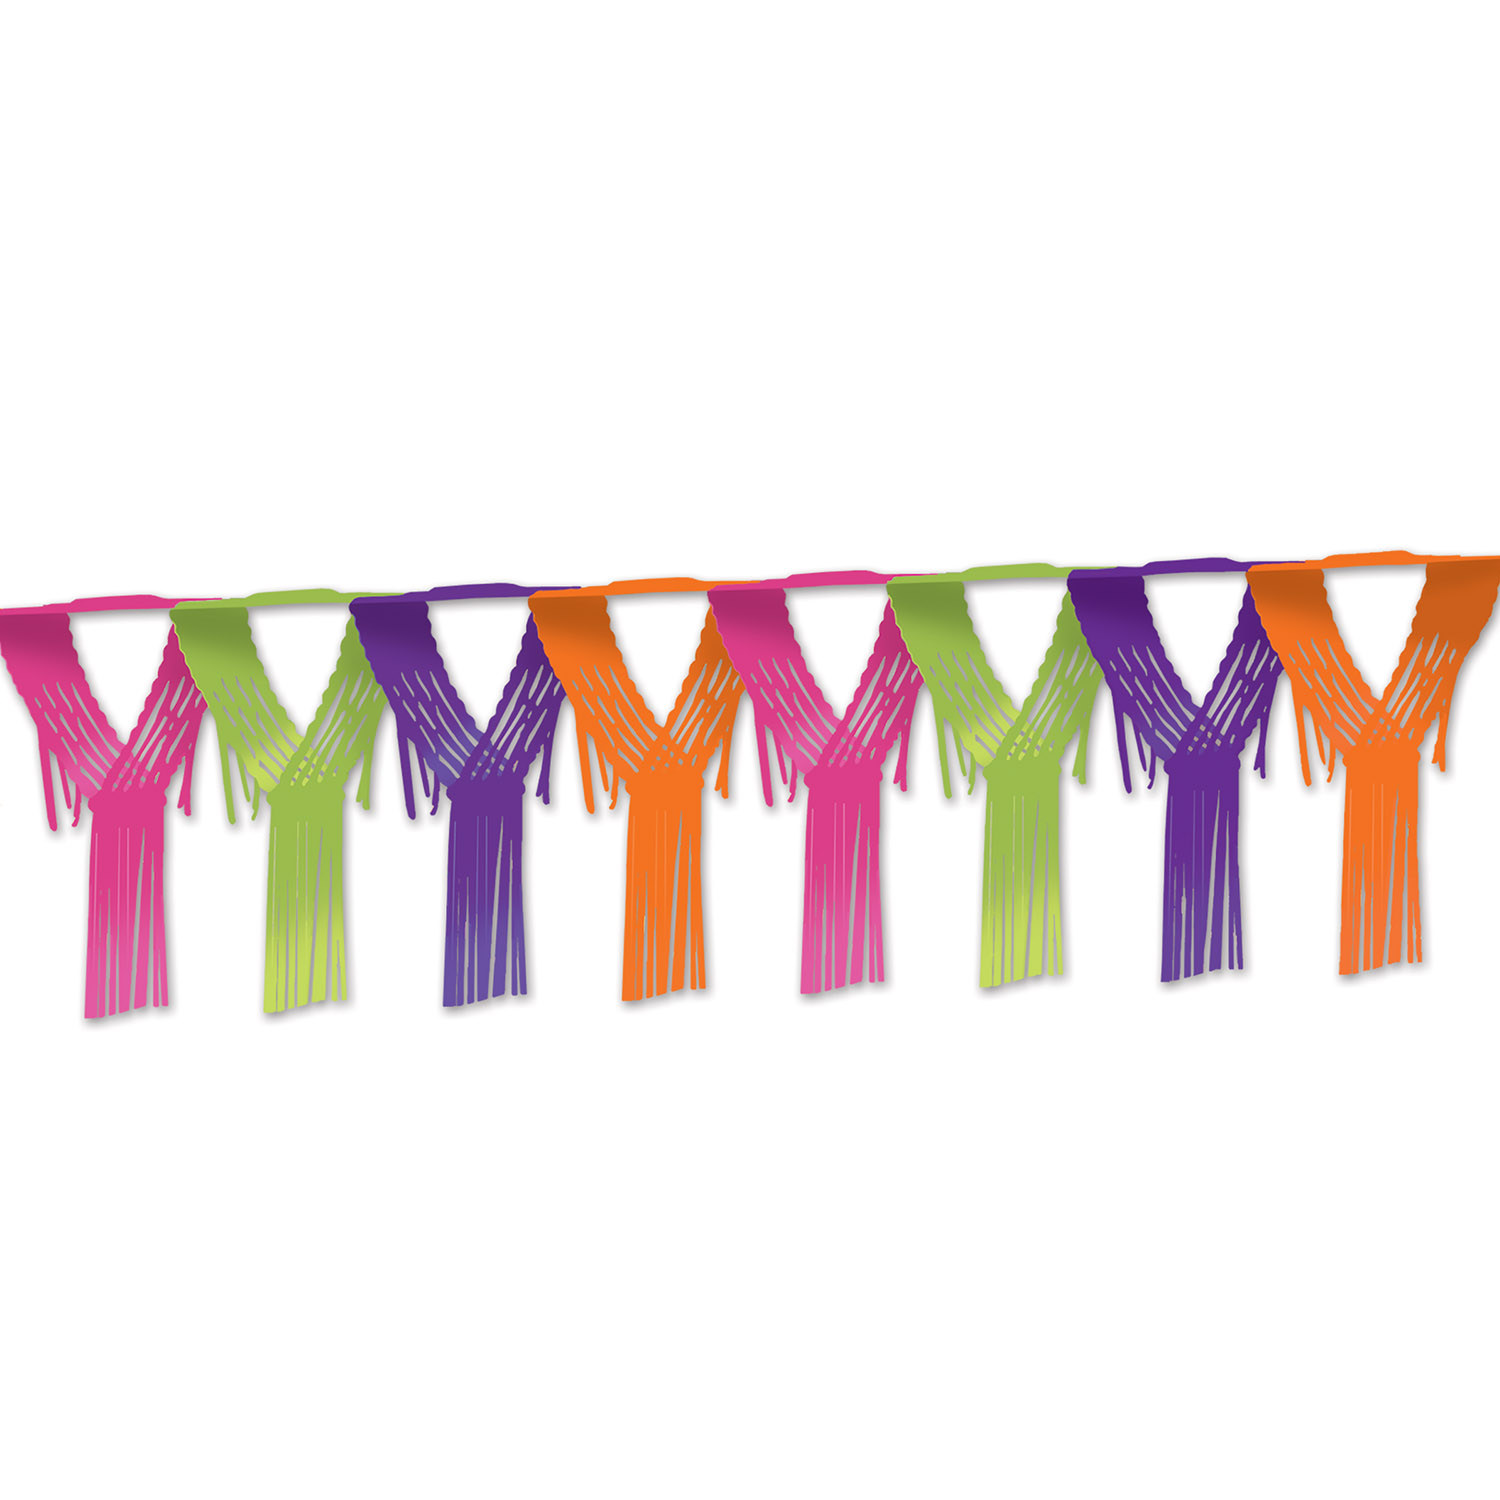 Drop Fringe Garland (Pack of 12) Fiesta Garland, Fringe Garland, Mexican decor, Day of the dead ideas, Inexpensive hanging decor, Drop Garland, Neon decor, Wholesale party, Bulk party, Cheap party, Party Ideas, Luau supplies, Island themed